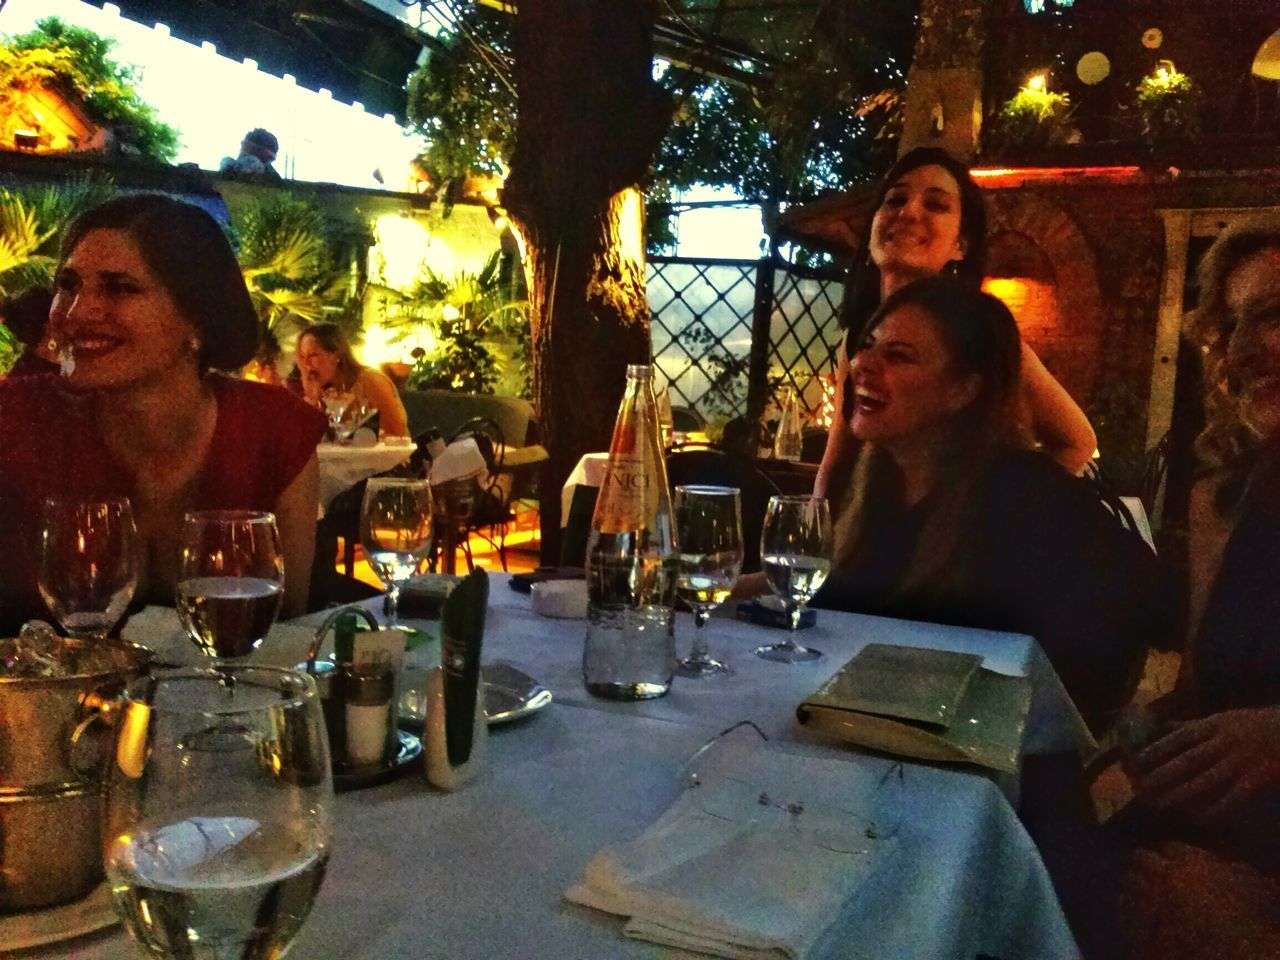 real people, table, sitting, smiling, togetherness, leisure activity, young women, happiness, young adult, outdoors, looking at camera, alcohol, wine, young men, night, two people, portrait, lifestyles, women, wineglass, men, vacations, drink, friendship, people